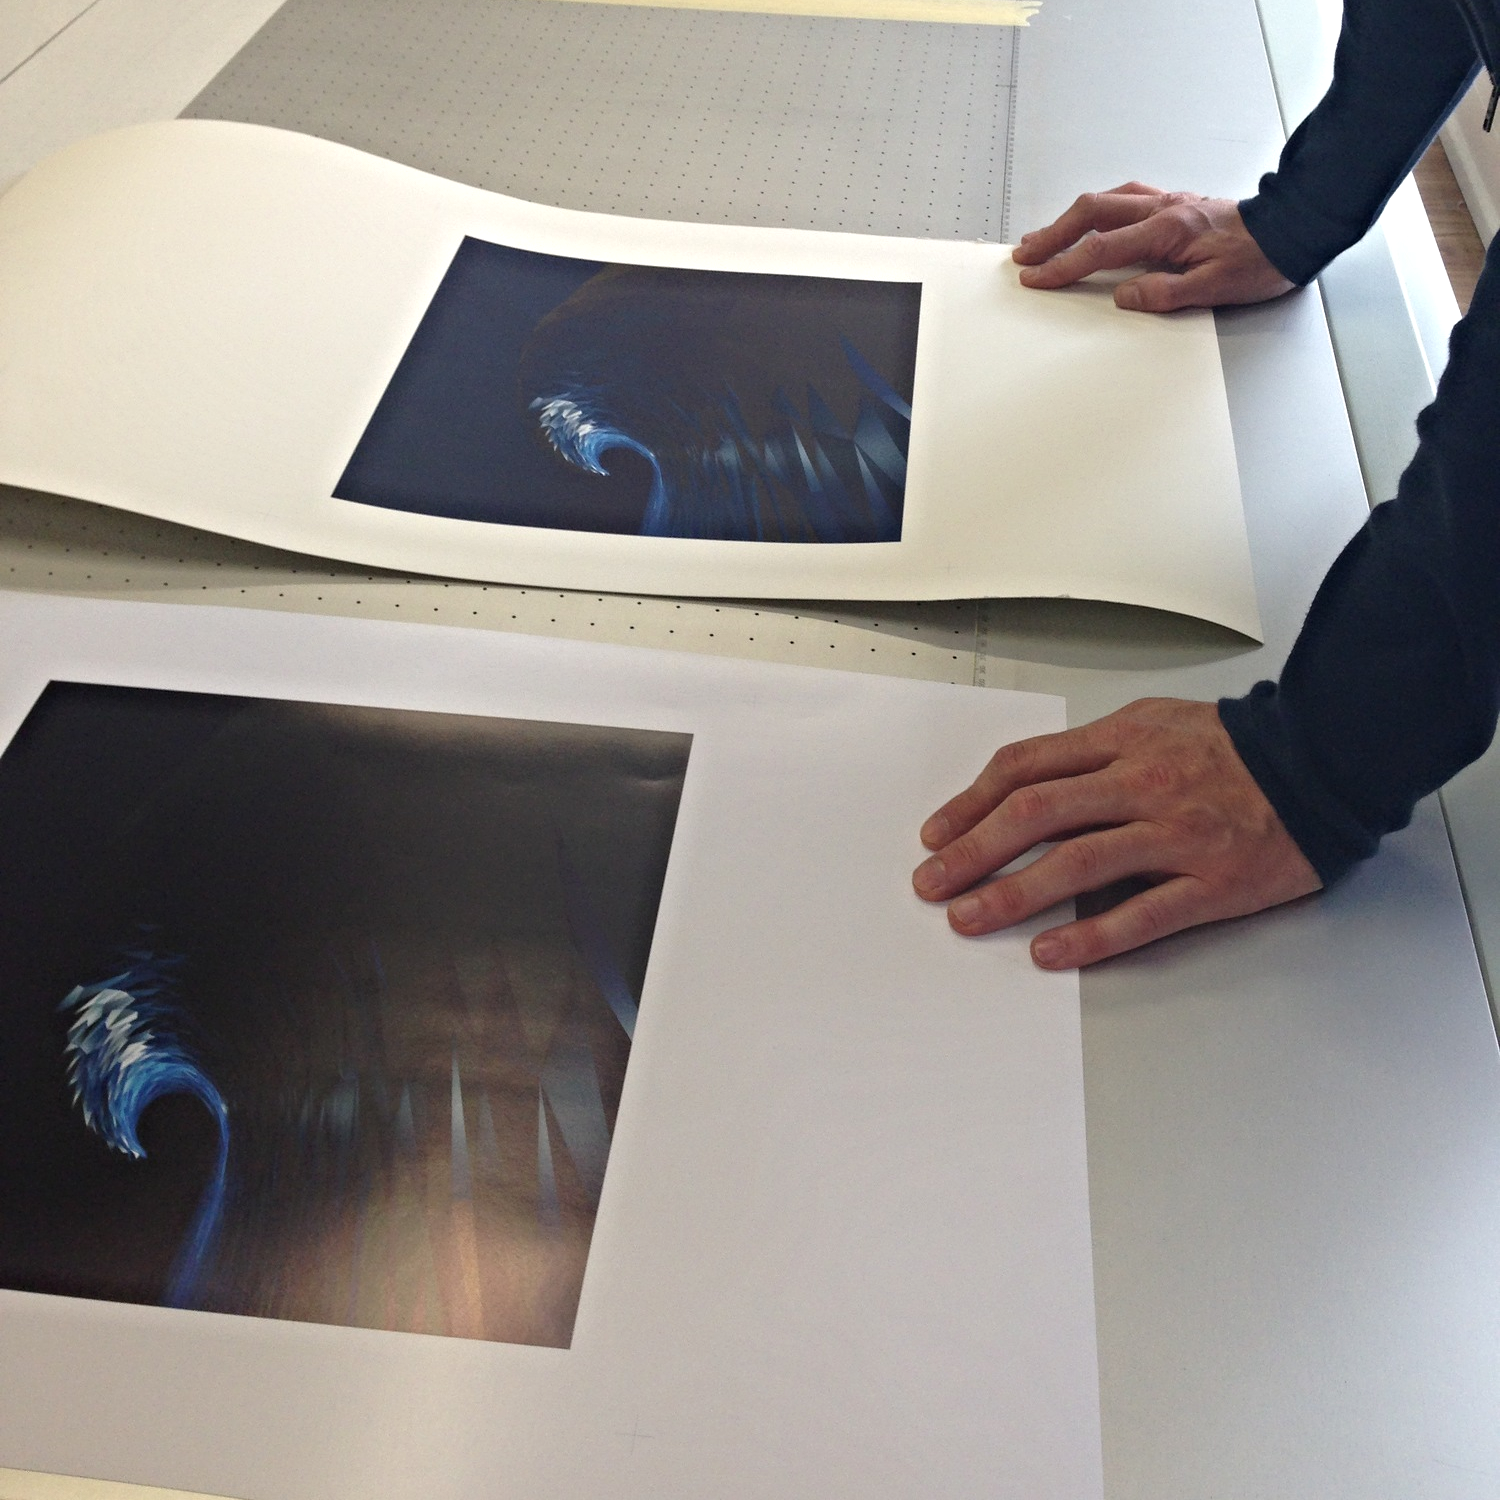 Proofing the prints on recycled paper from Onward Display Printers